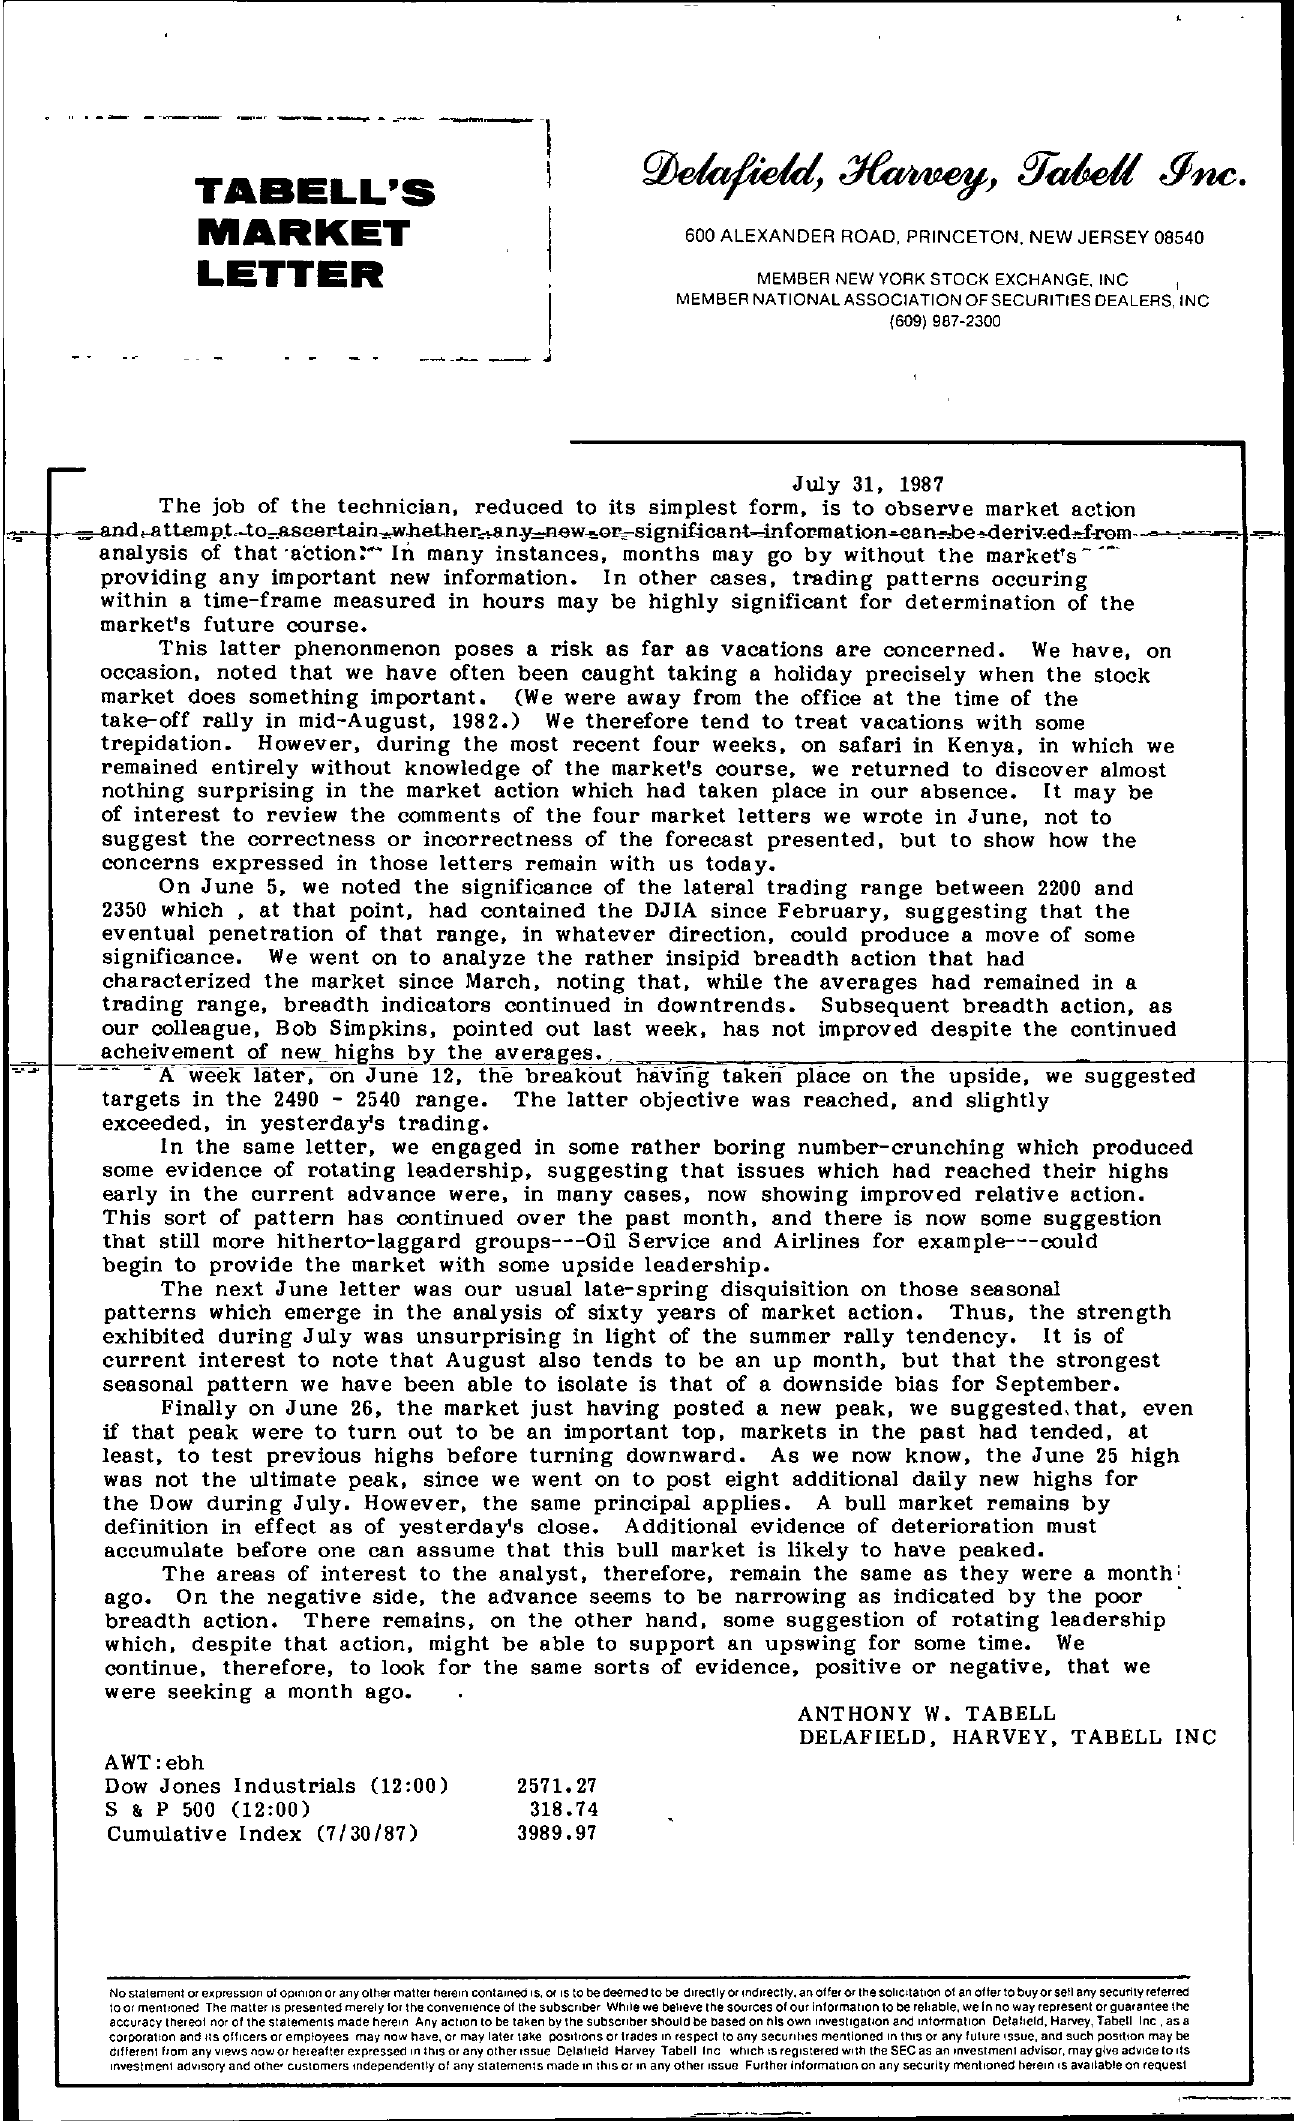 Tabell's Market Letter - July 31, 1987